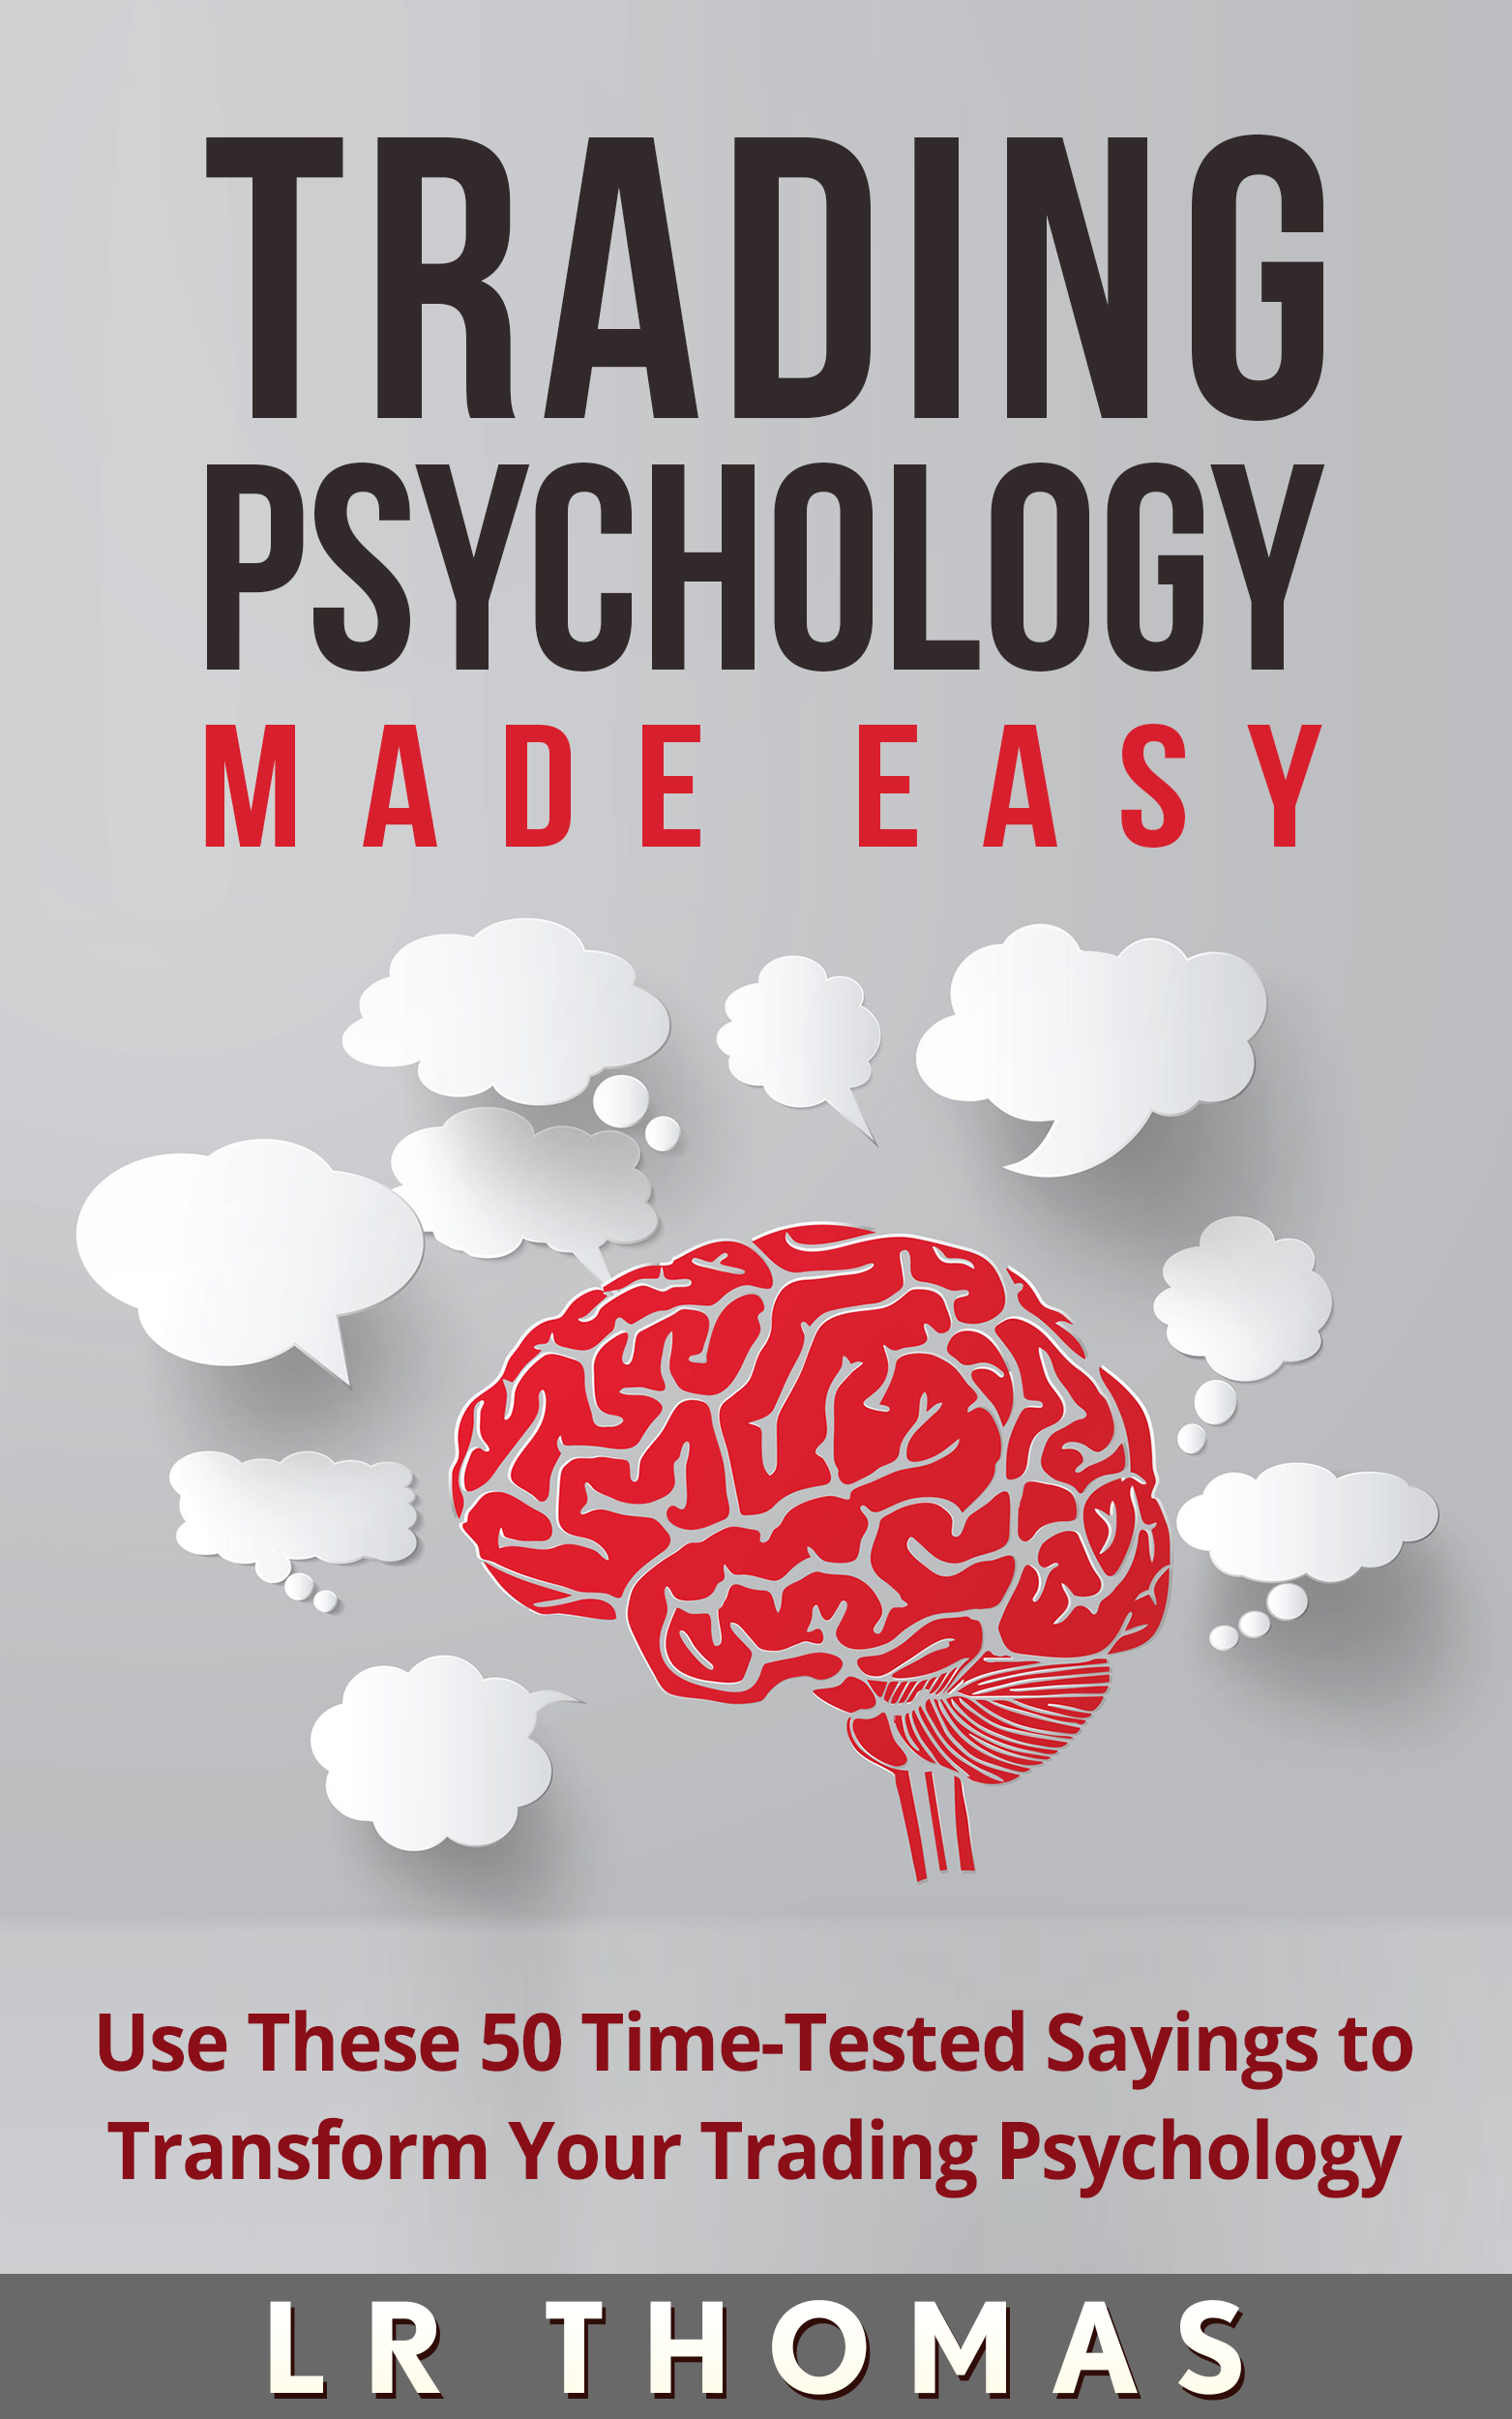 Trading_Psychology_Made_Easy